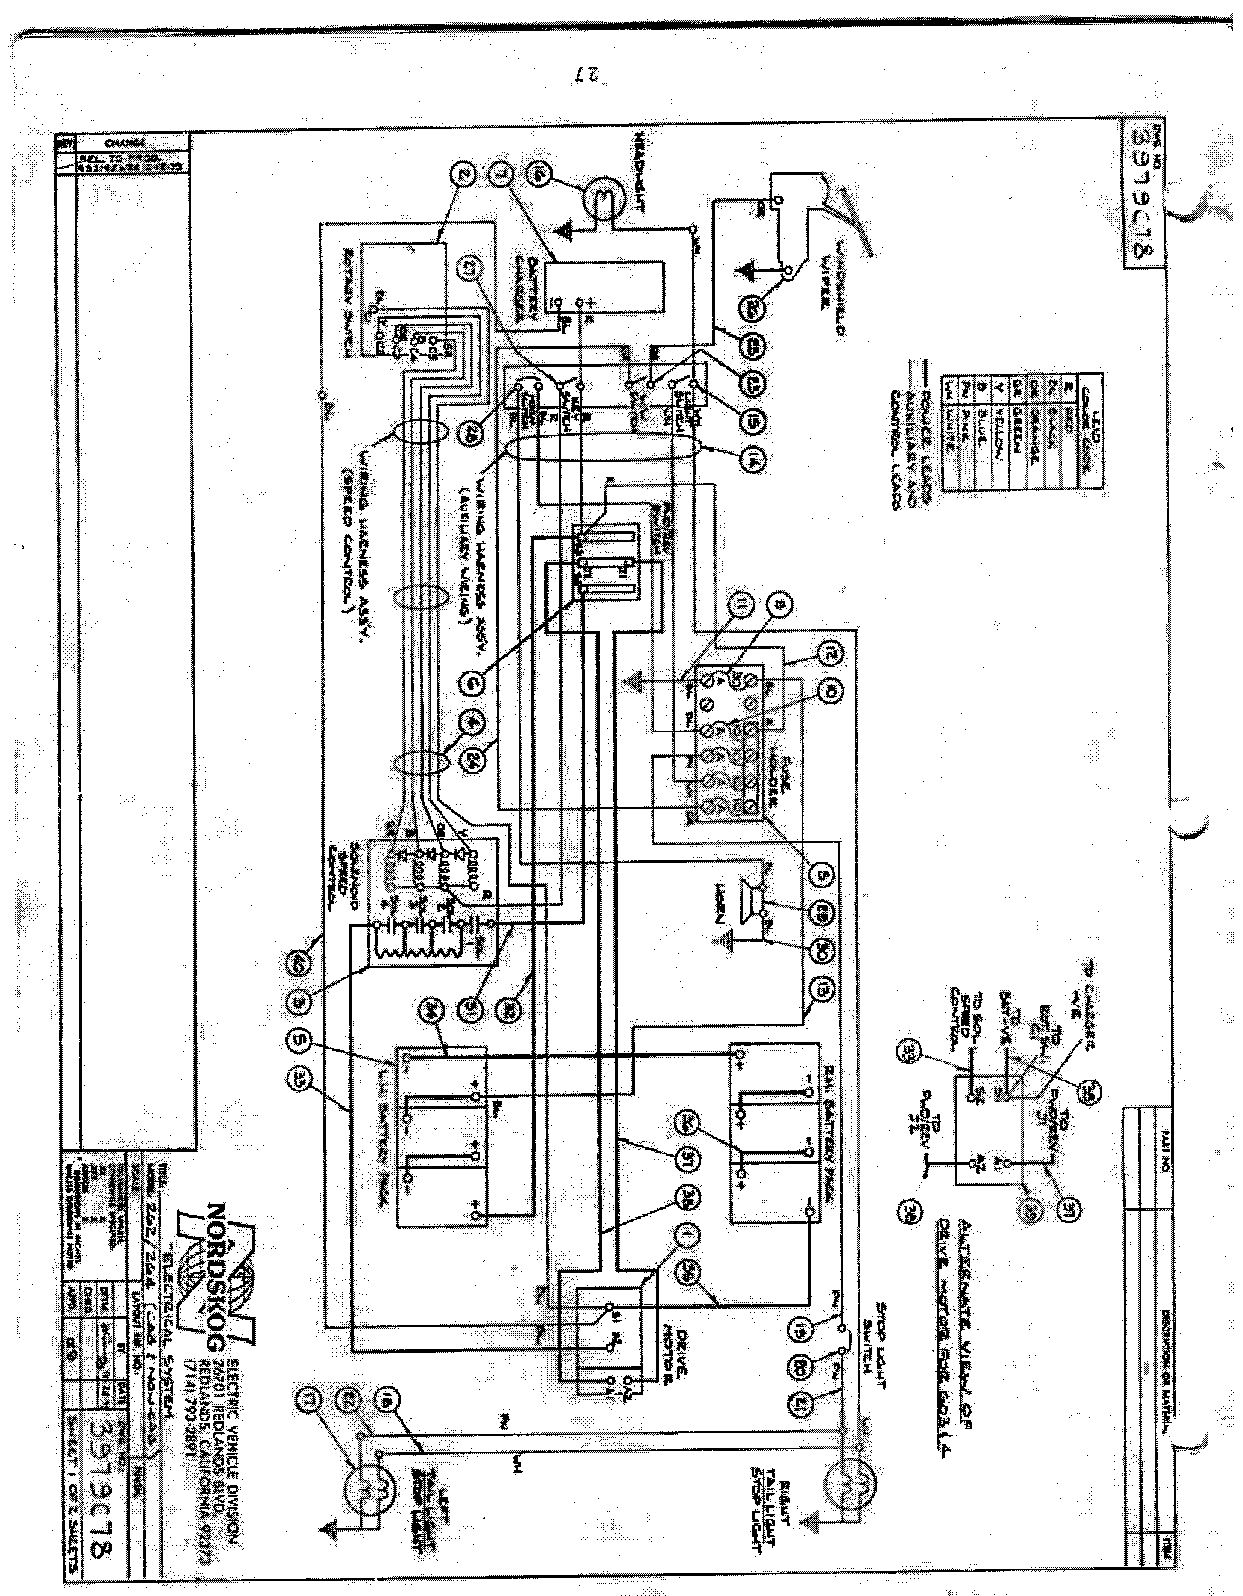 melex 212 wiring diagram